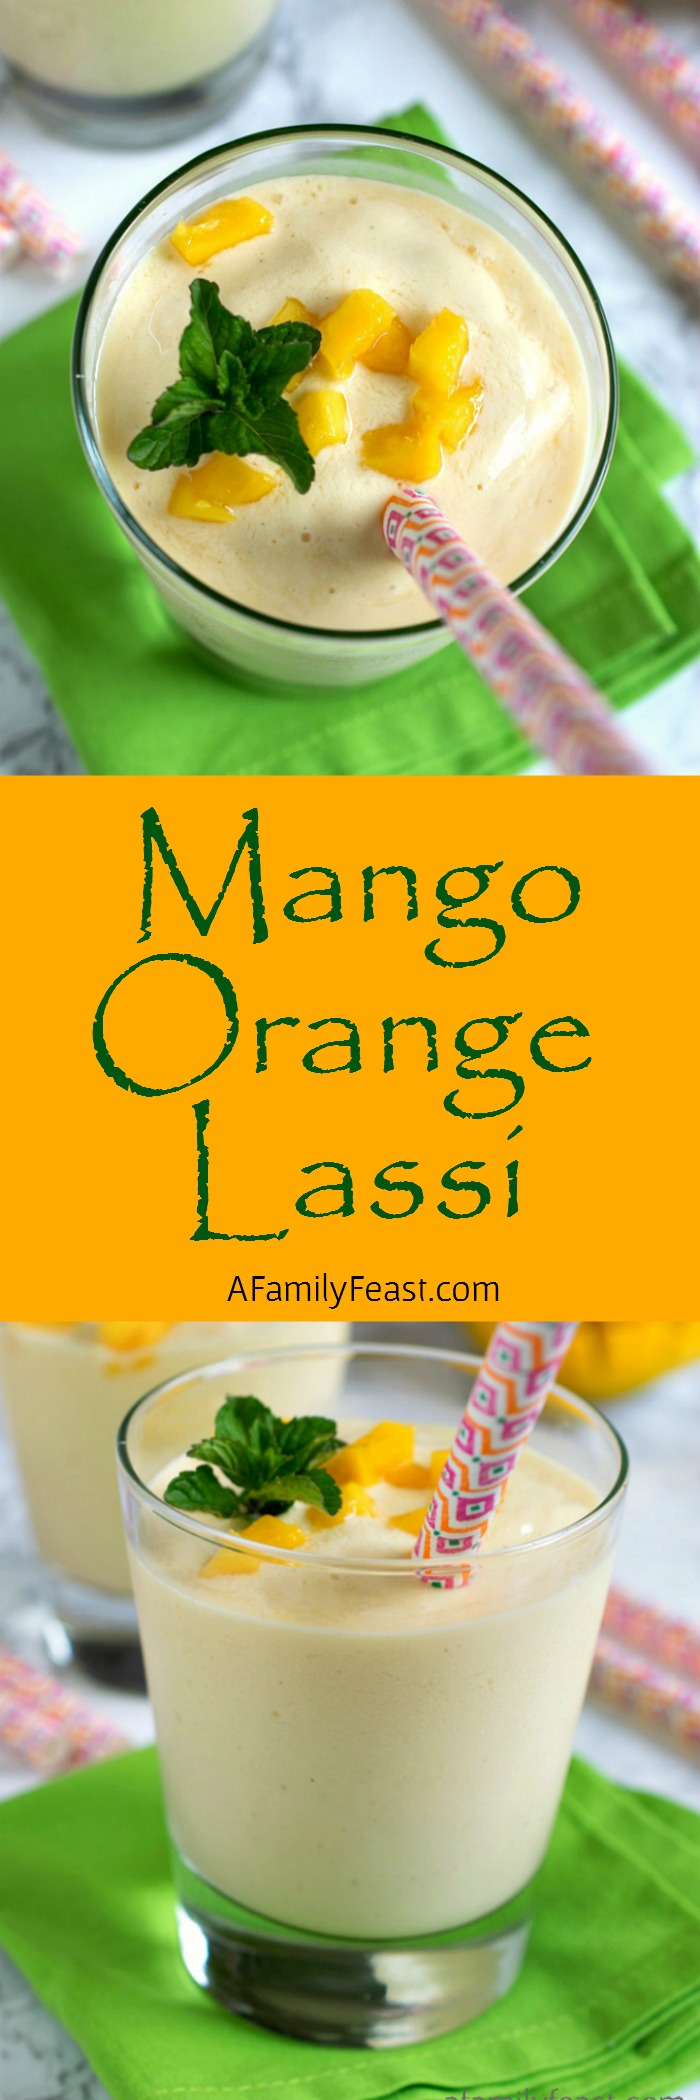 Mango Orange Lassi - A refreshing yogurt drink with sweetness from mango and orange. Perfect with any spicy meal!